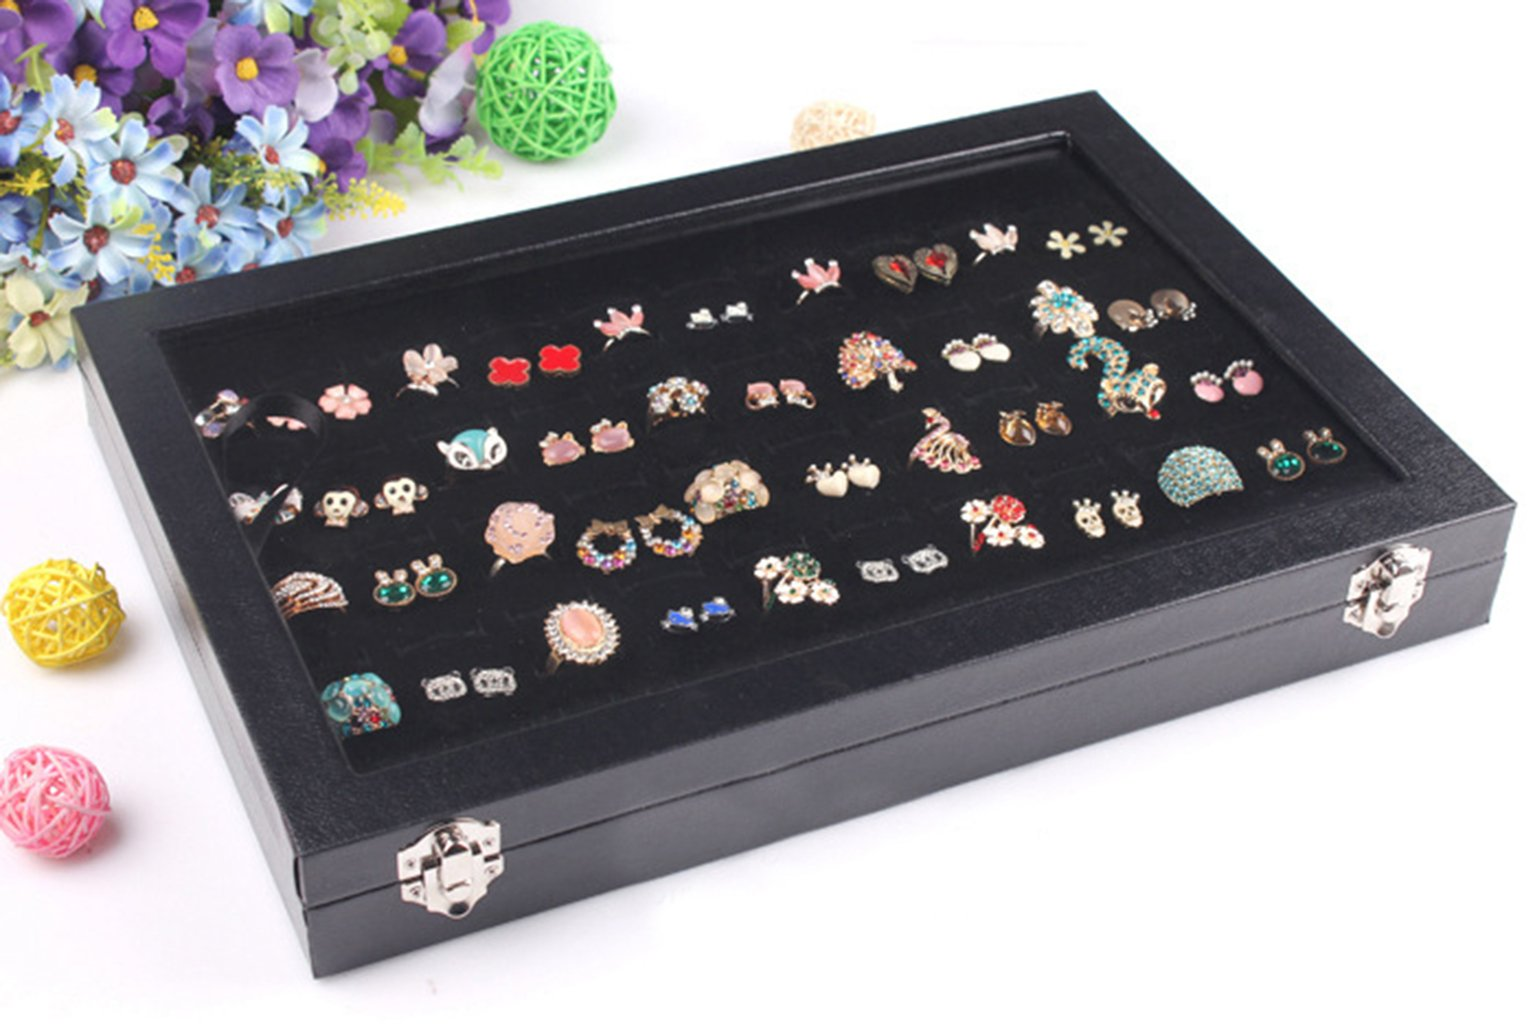 Wuligirl 100 Slot Jewelry Ring Tray Velvet Clear Lid Rings Holder Showcase Display Storage Organizer Stackable(100 Slot Ring Box) by Wuligirl (Image #3)